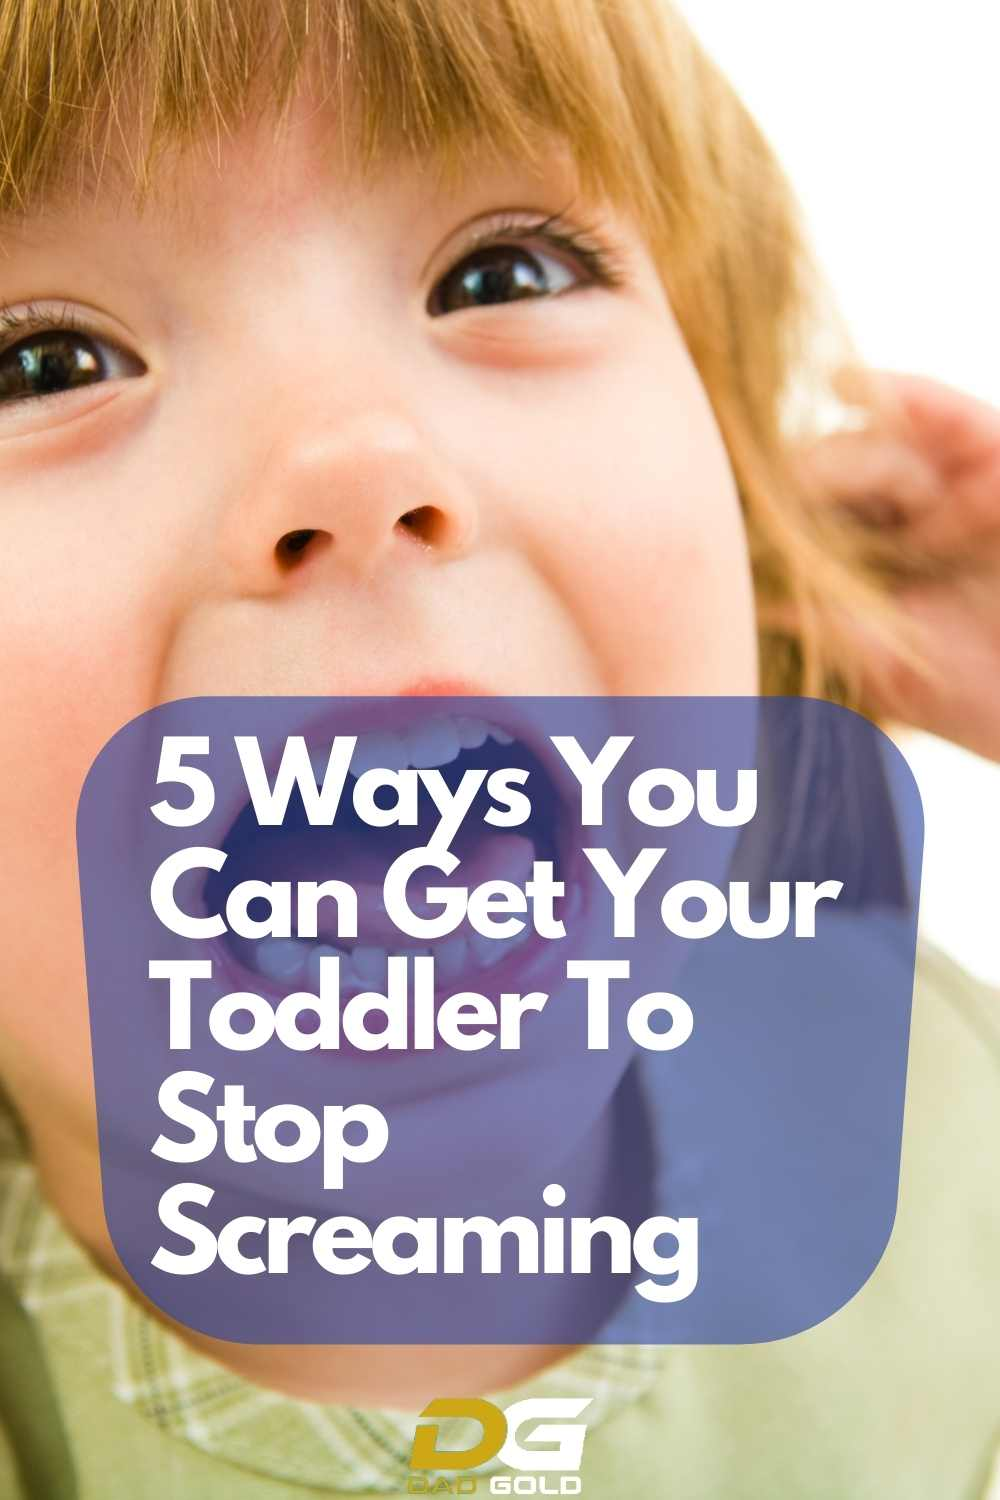 5 Ways You Can Get Your Toddler To Stop Screaming